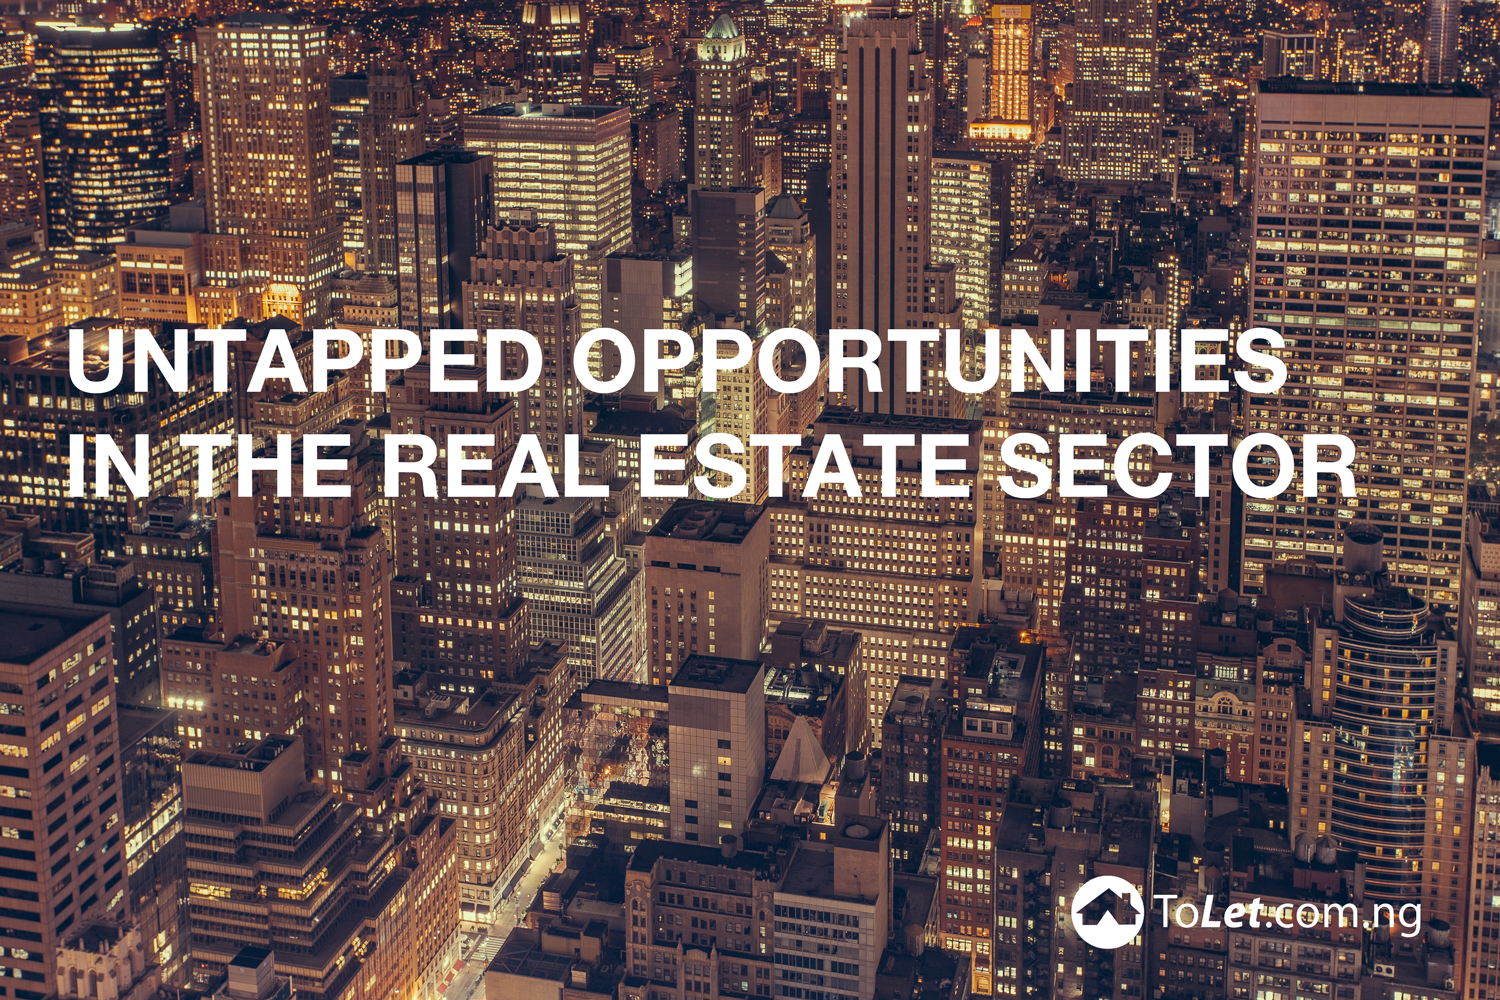 The untapped opportunities in the real estate sector